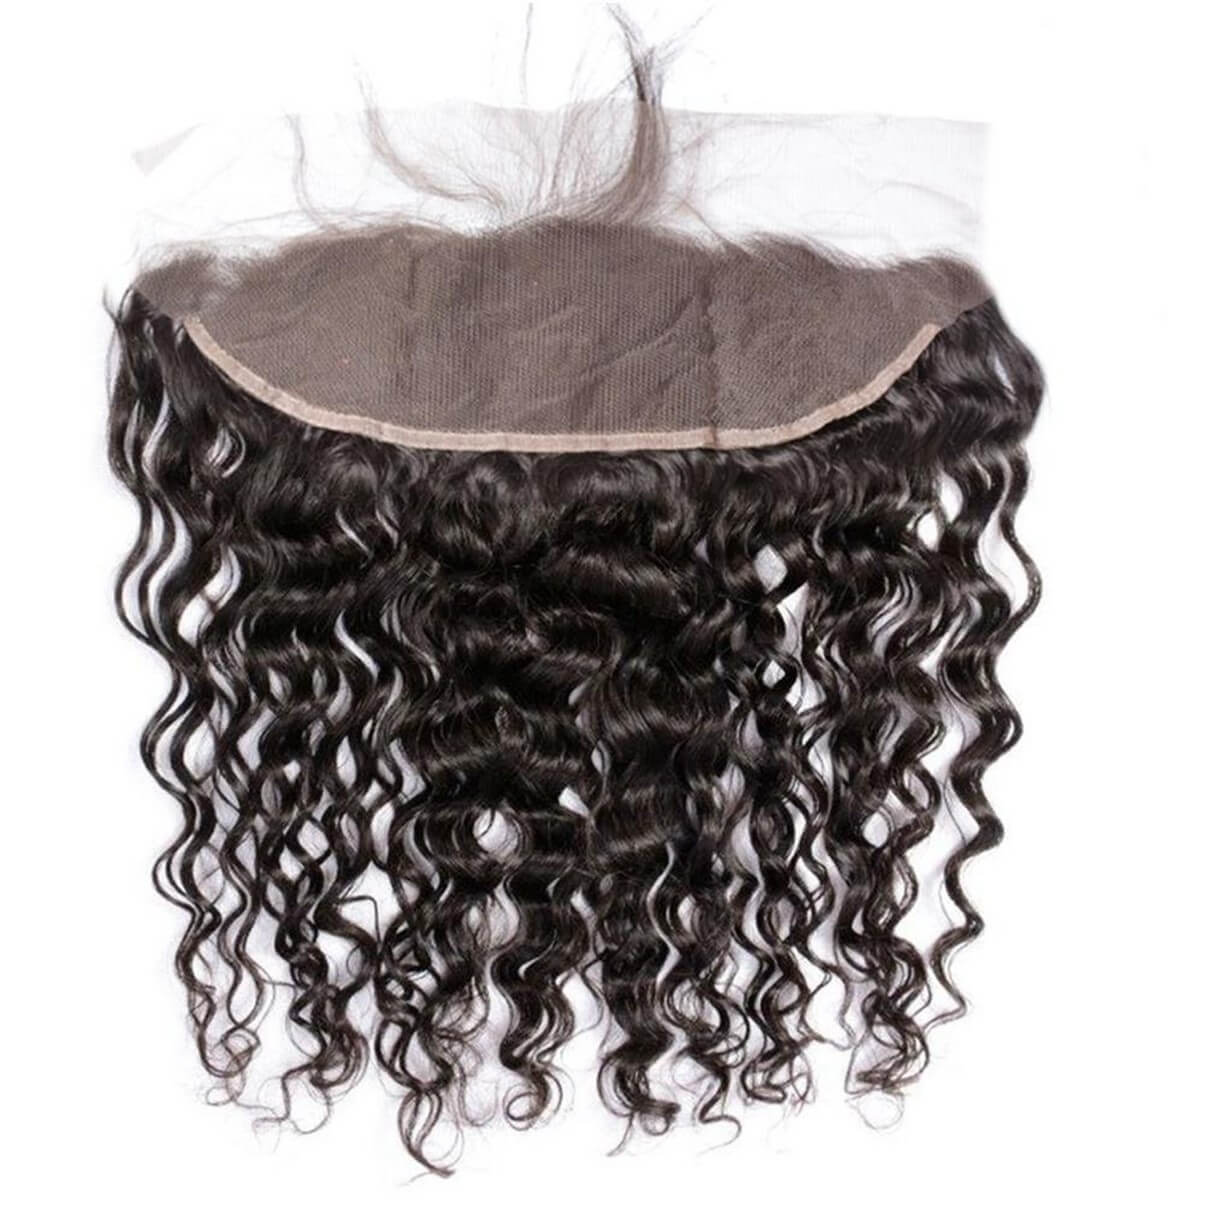 Lakihair 8A Brazilian Real Human Hair 3 Bundles With 13x4 Lace Frontal Closure Water Wave Hair Bundles